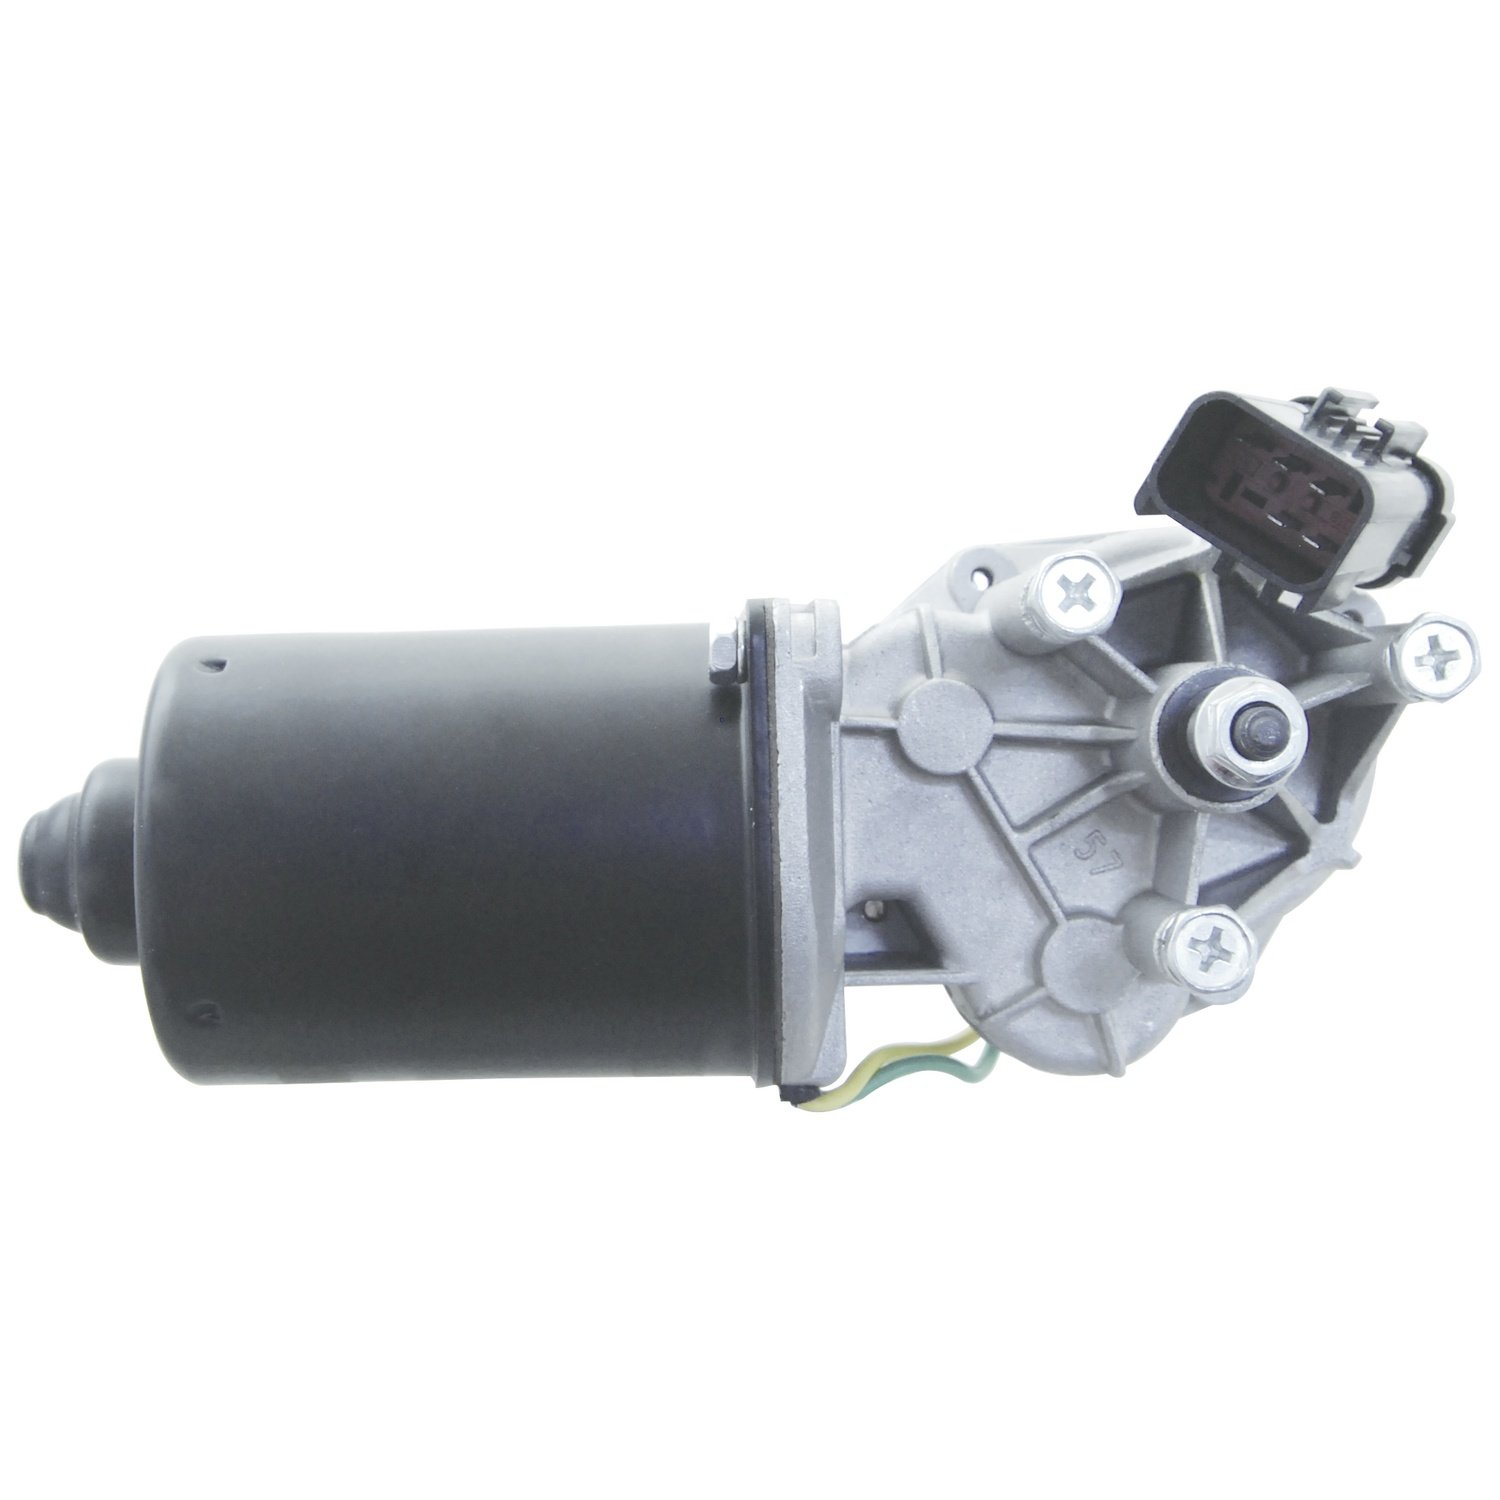 NEW FRONT WIPER MOTOR FIT JEEP CHEROKEE LIMITED SPORT UTILITY 2000-01 55155297AB 55155300AB